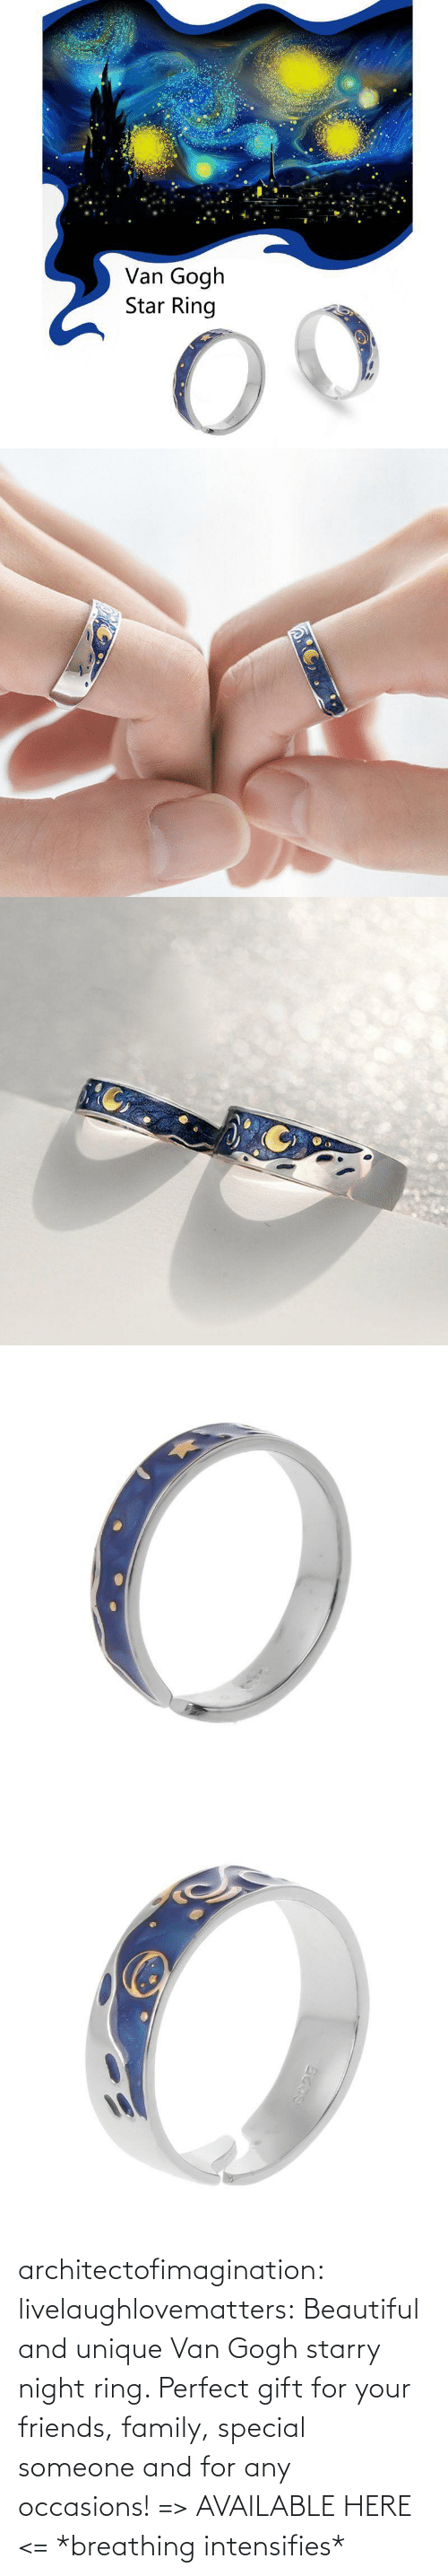 someone: architectofimagination:  livelaughlovematters: Beautiful and unique Van Gogh starry night ring. Perfect gift for your friends, family, special someone and for any occasions! => AVAILABLE HERE <=    *breathing intensifies*